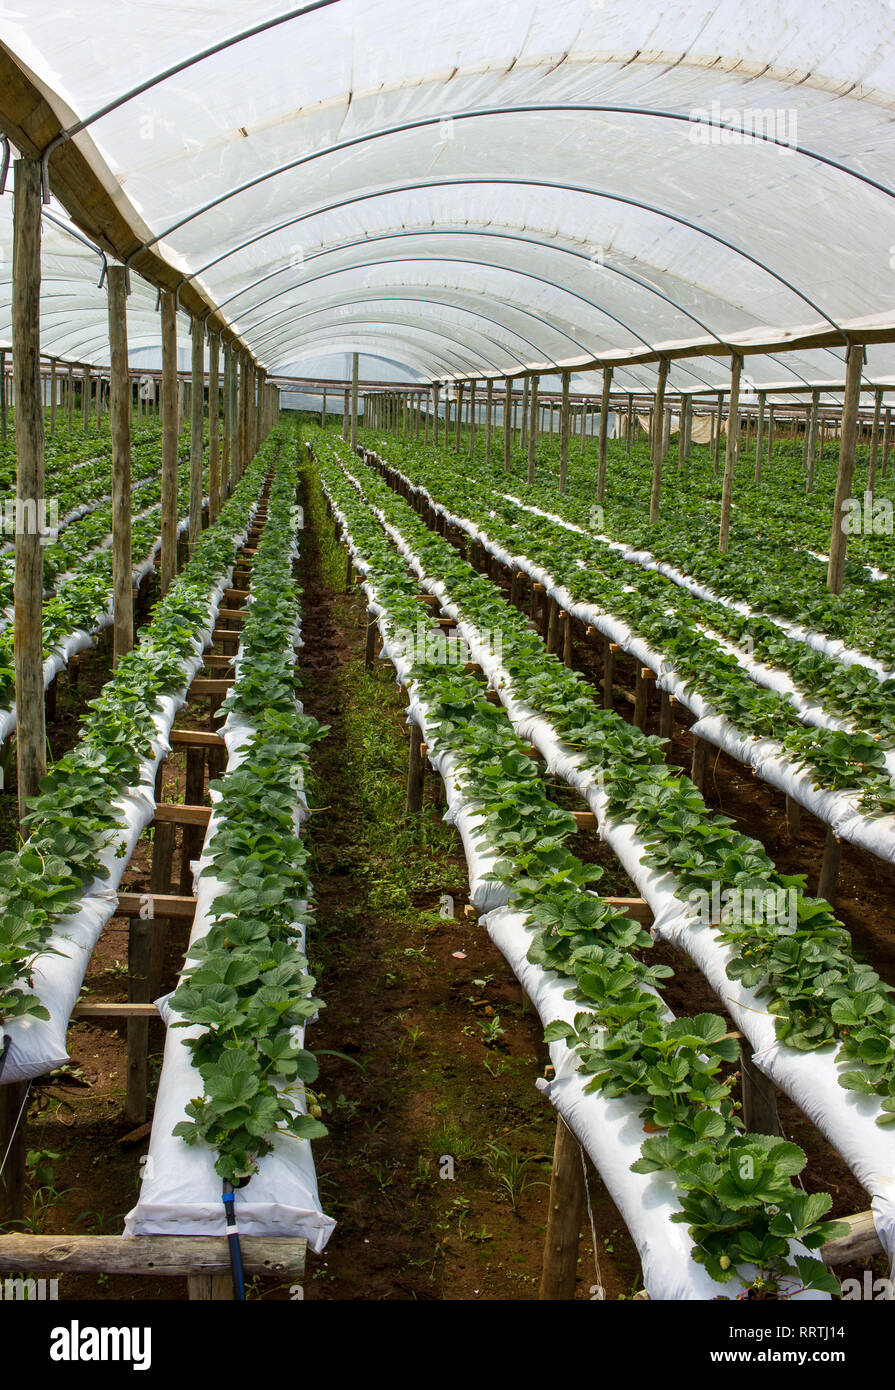 Raised Beds Strawberry Farm Inside Green House Stock Photo